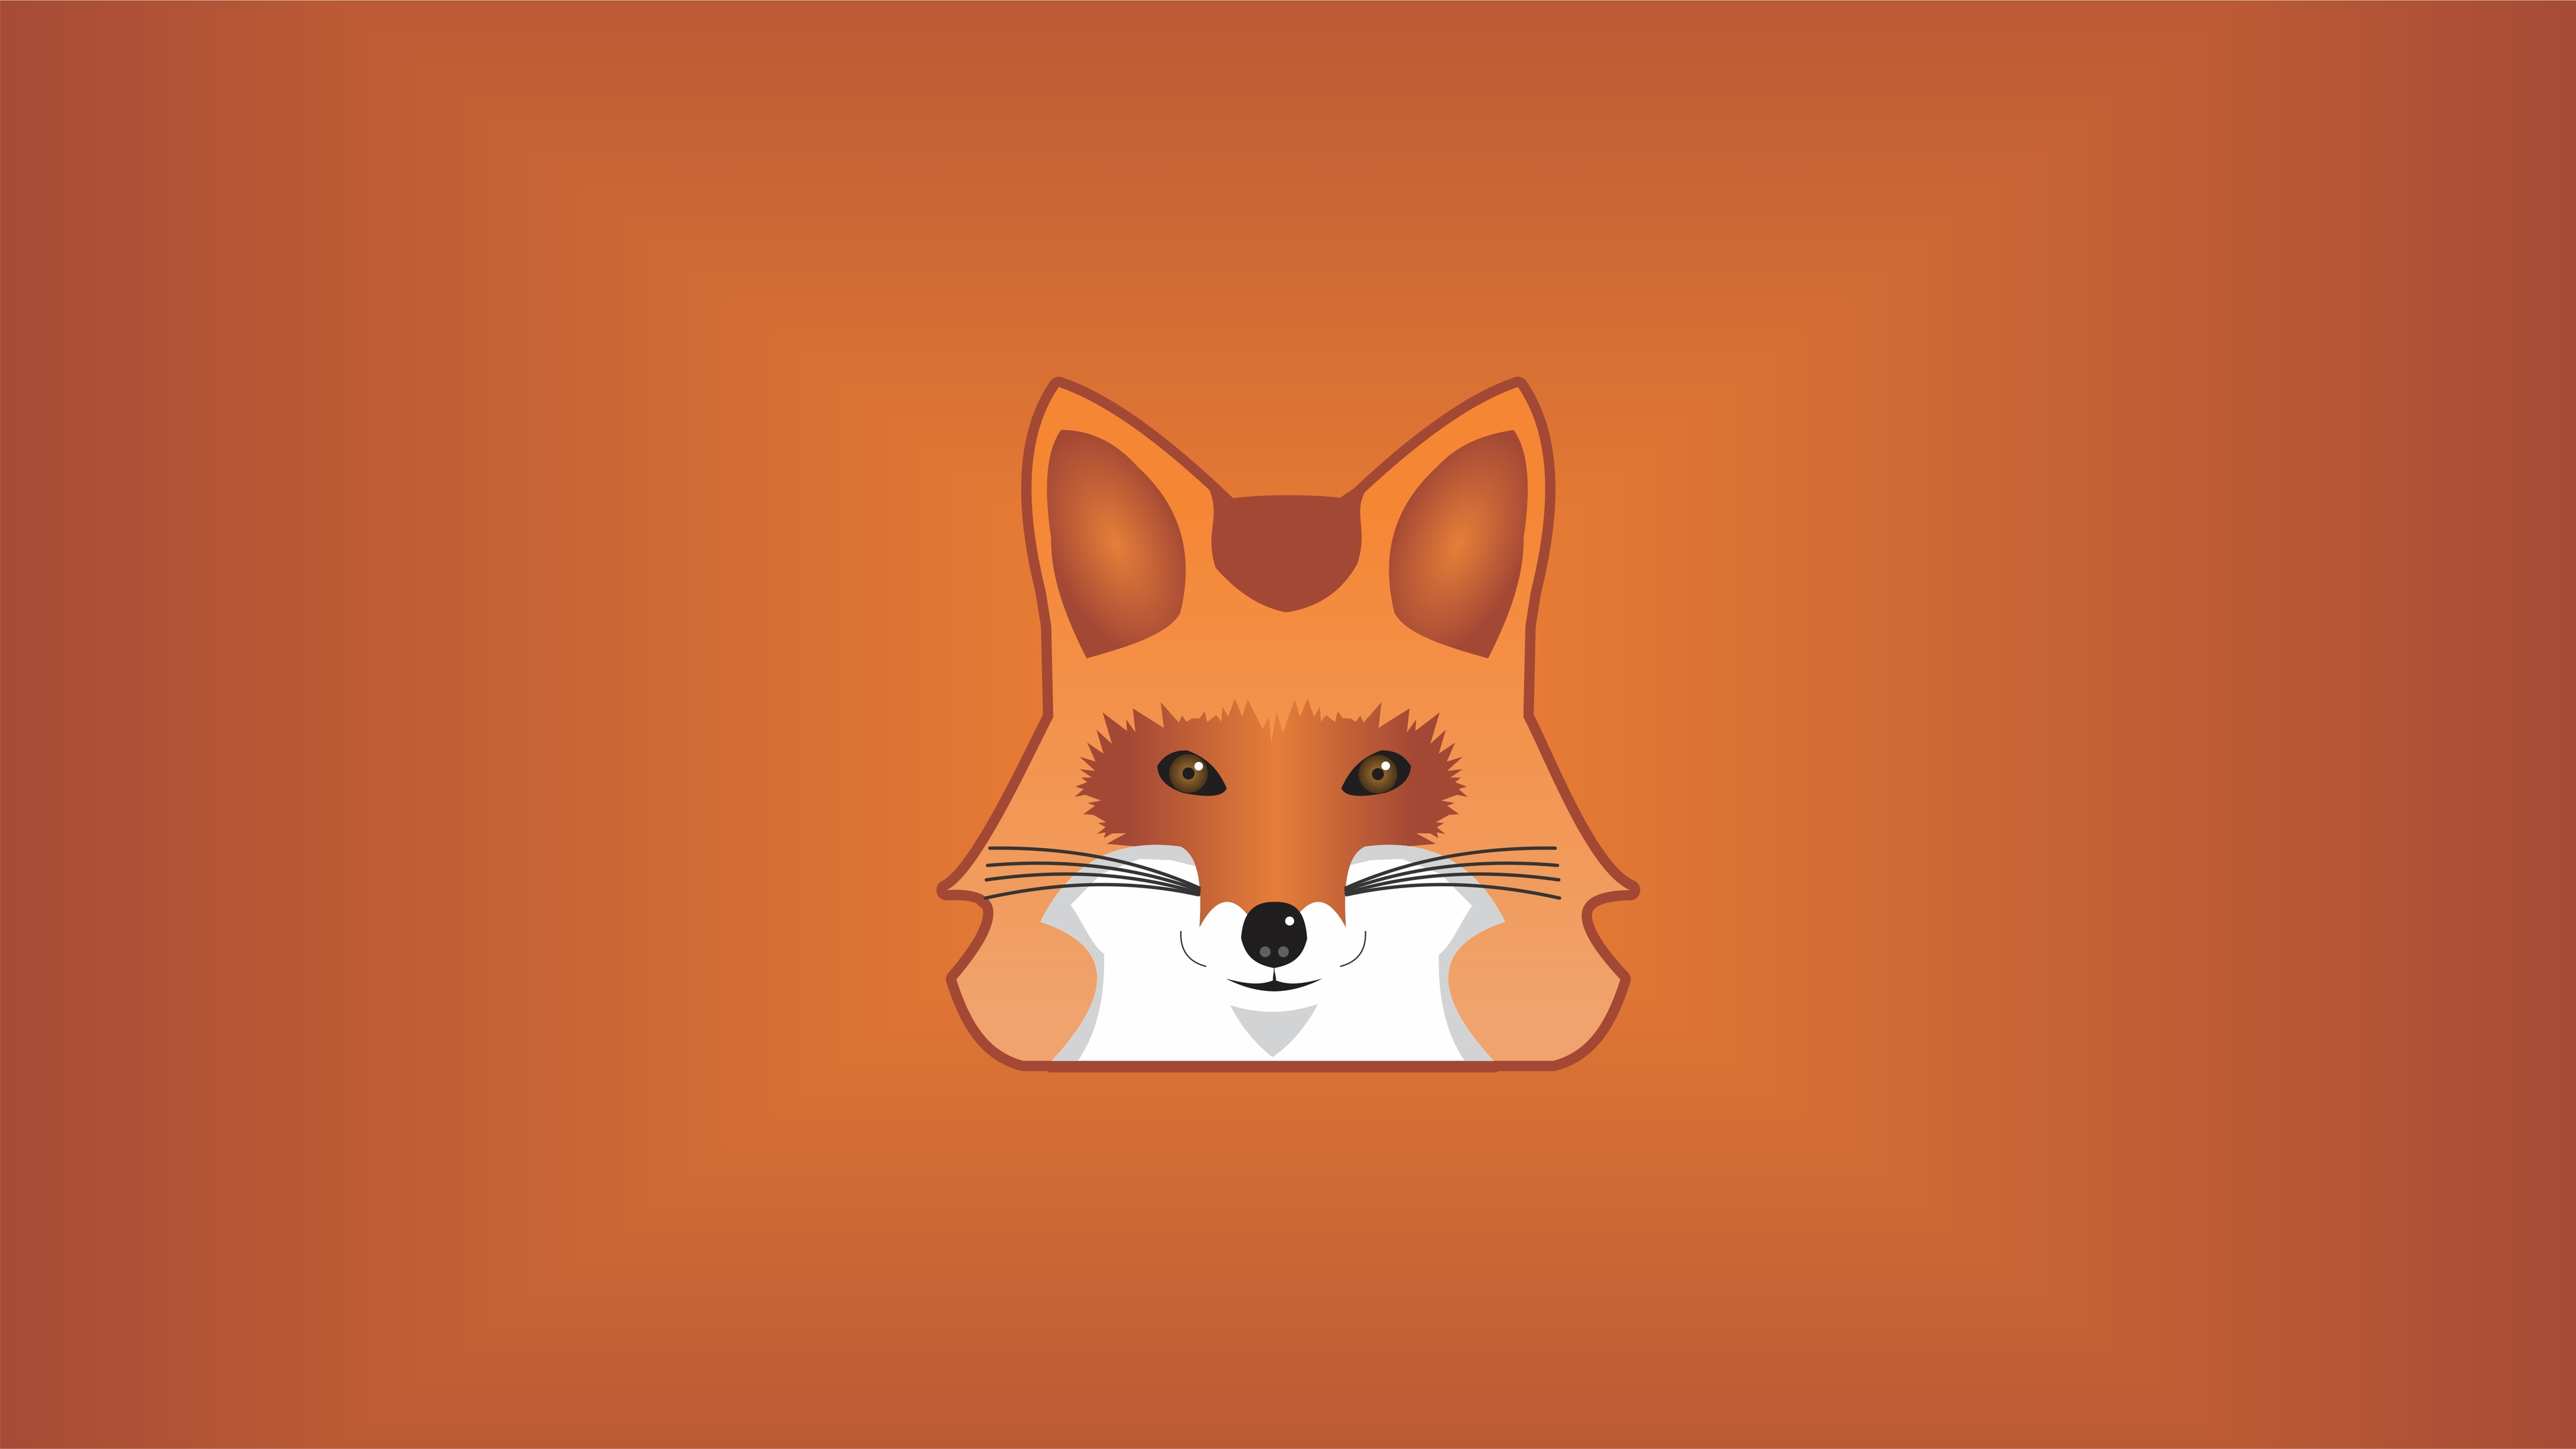 fox minimalist 5k 1540754268 - Fox Minimalist 5k - minimalist wallpapers, minimalism wallpapers, hd-wallpapers, fox wallpapers, digital art wallpapers, artwork wallpapers, artist wallpapers, 5k wallpapers, 4k-wallpapers